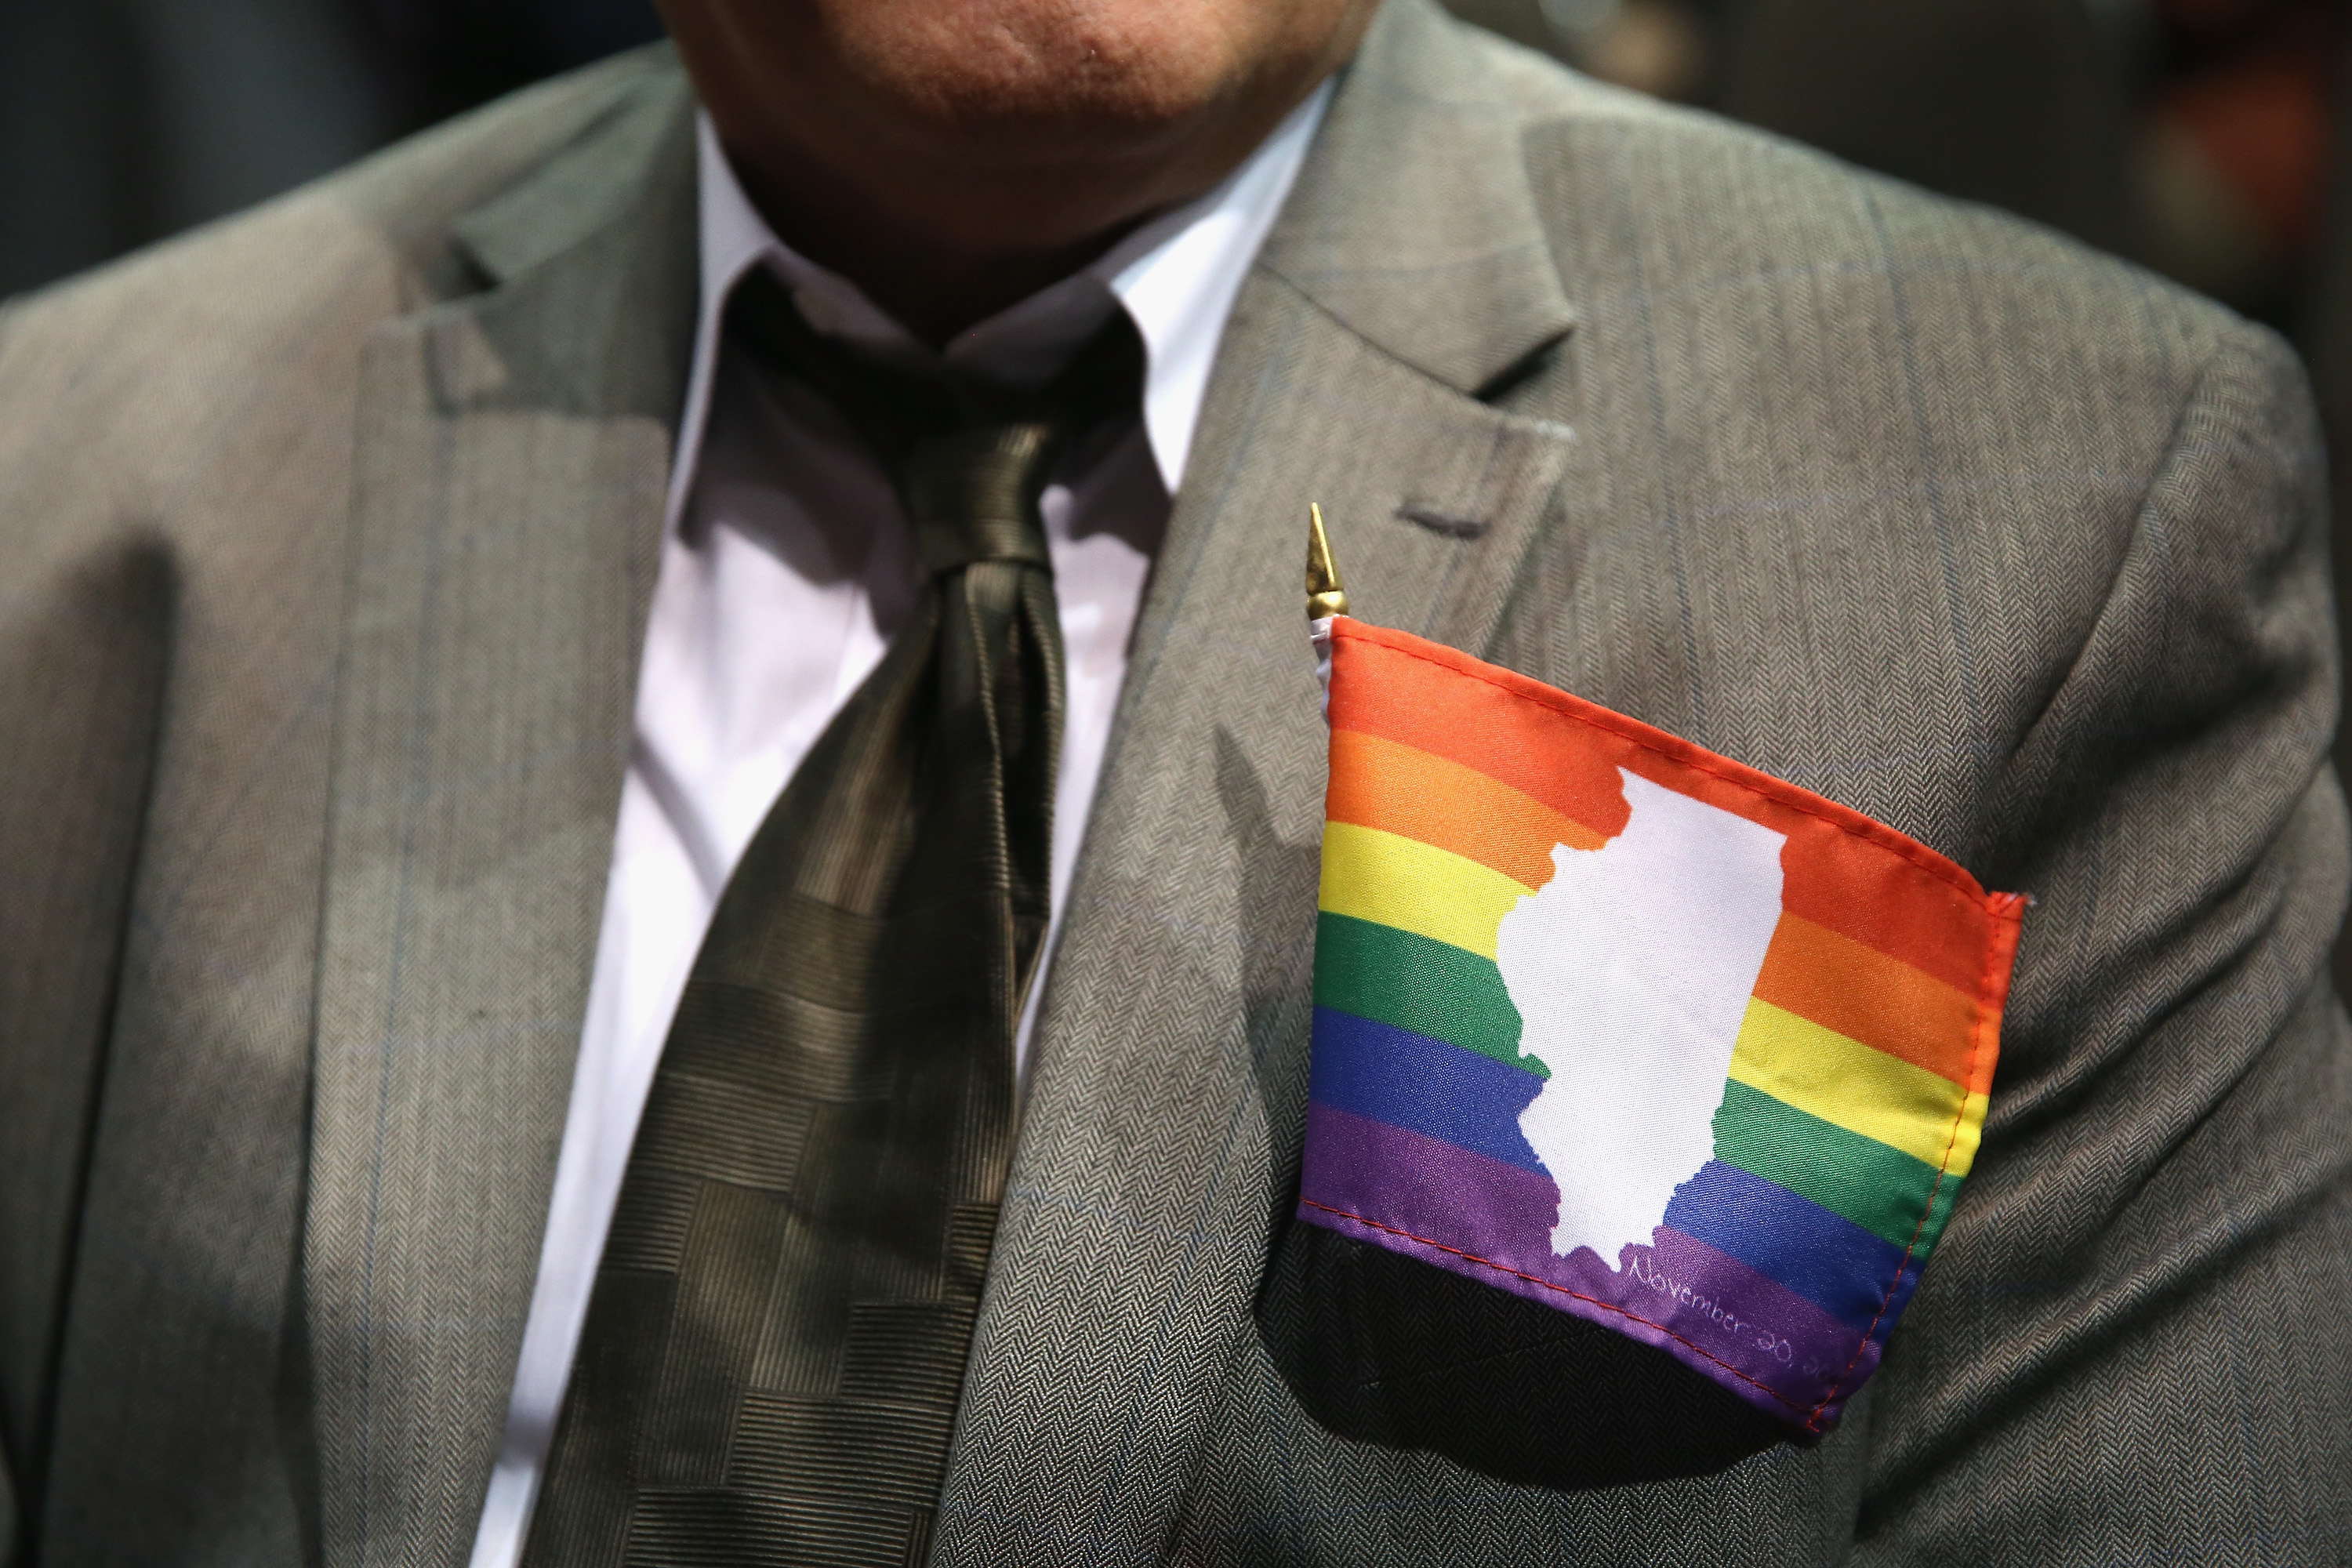 Illinois Governor Pat Quinn Signs Same-Sex Marriage Bill Into Law